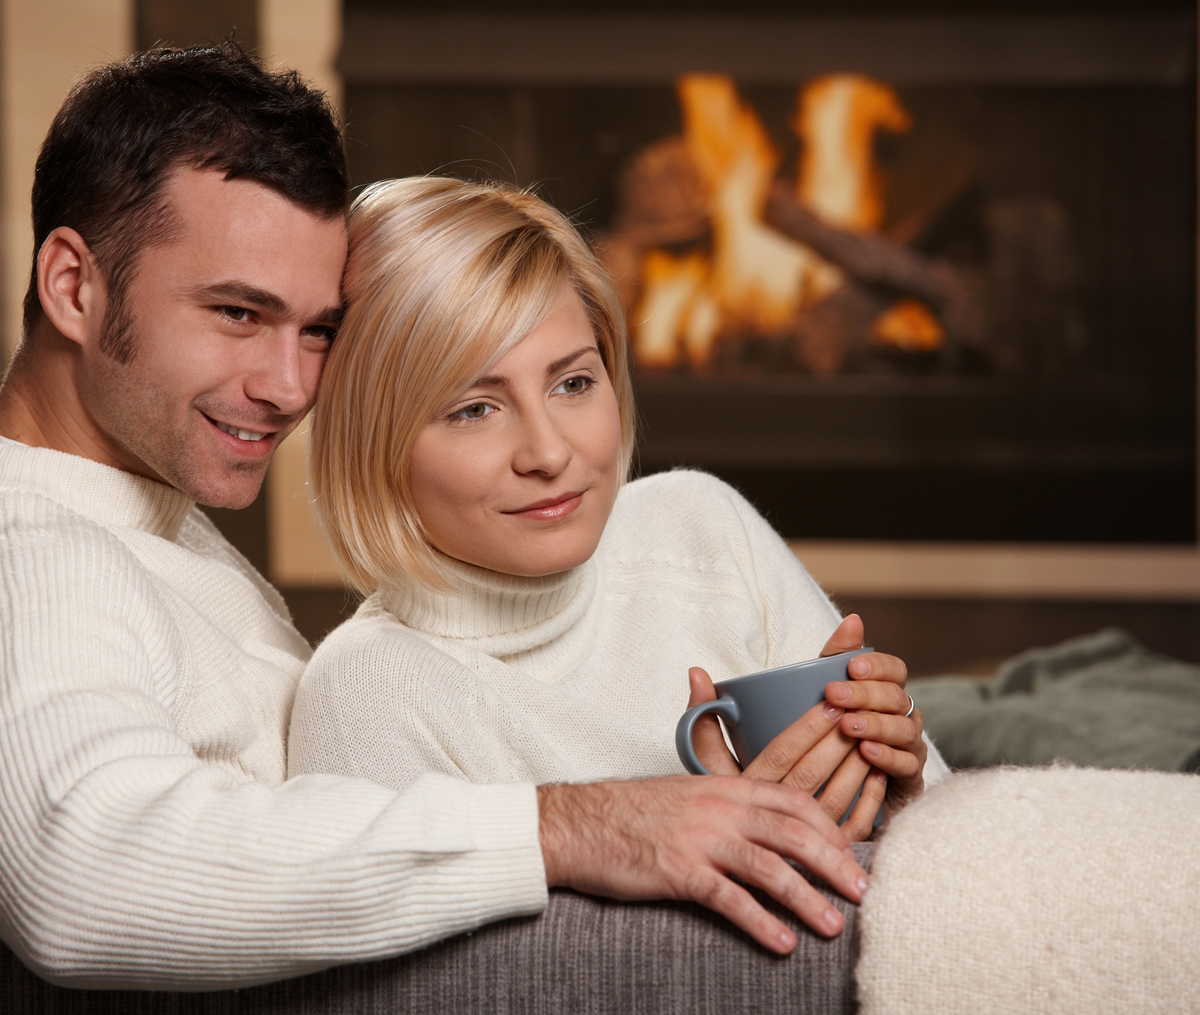 Young love couple hugging on sofa in front of fireplace at home, looking away, smiling.